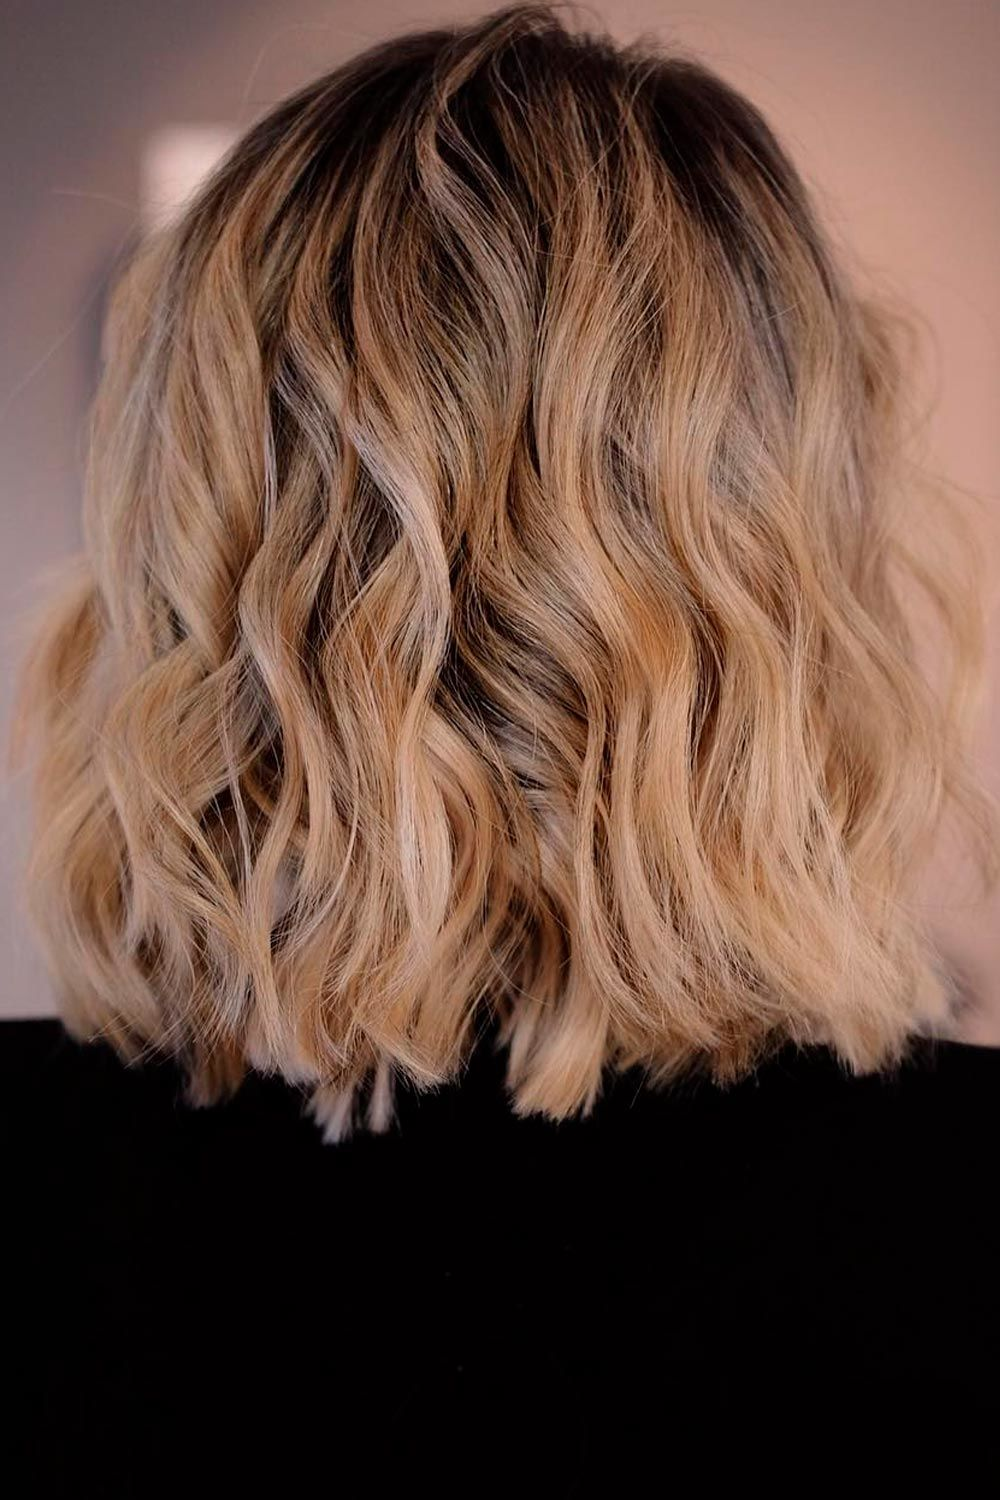 Blonde Ombre Hair, short ombre blonde hair, very short ombre hair, short hair ombre red